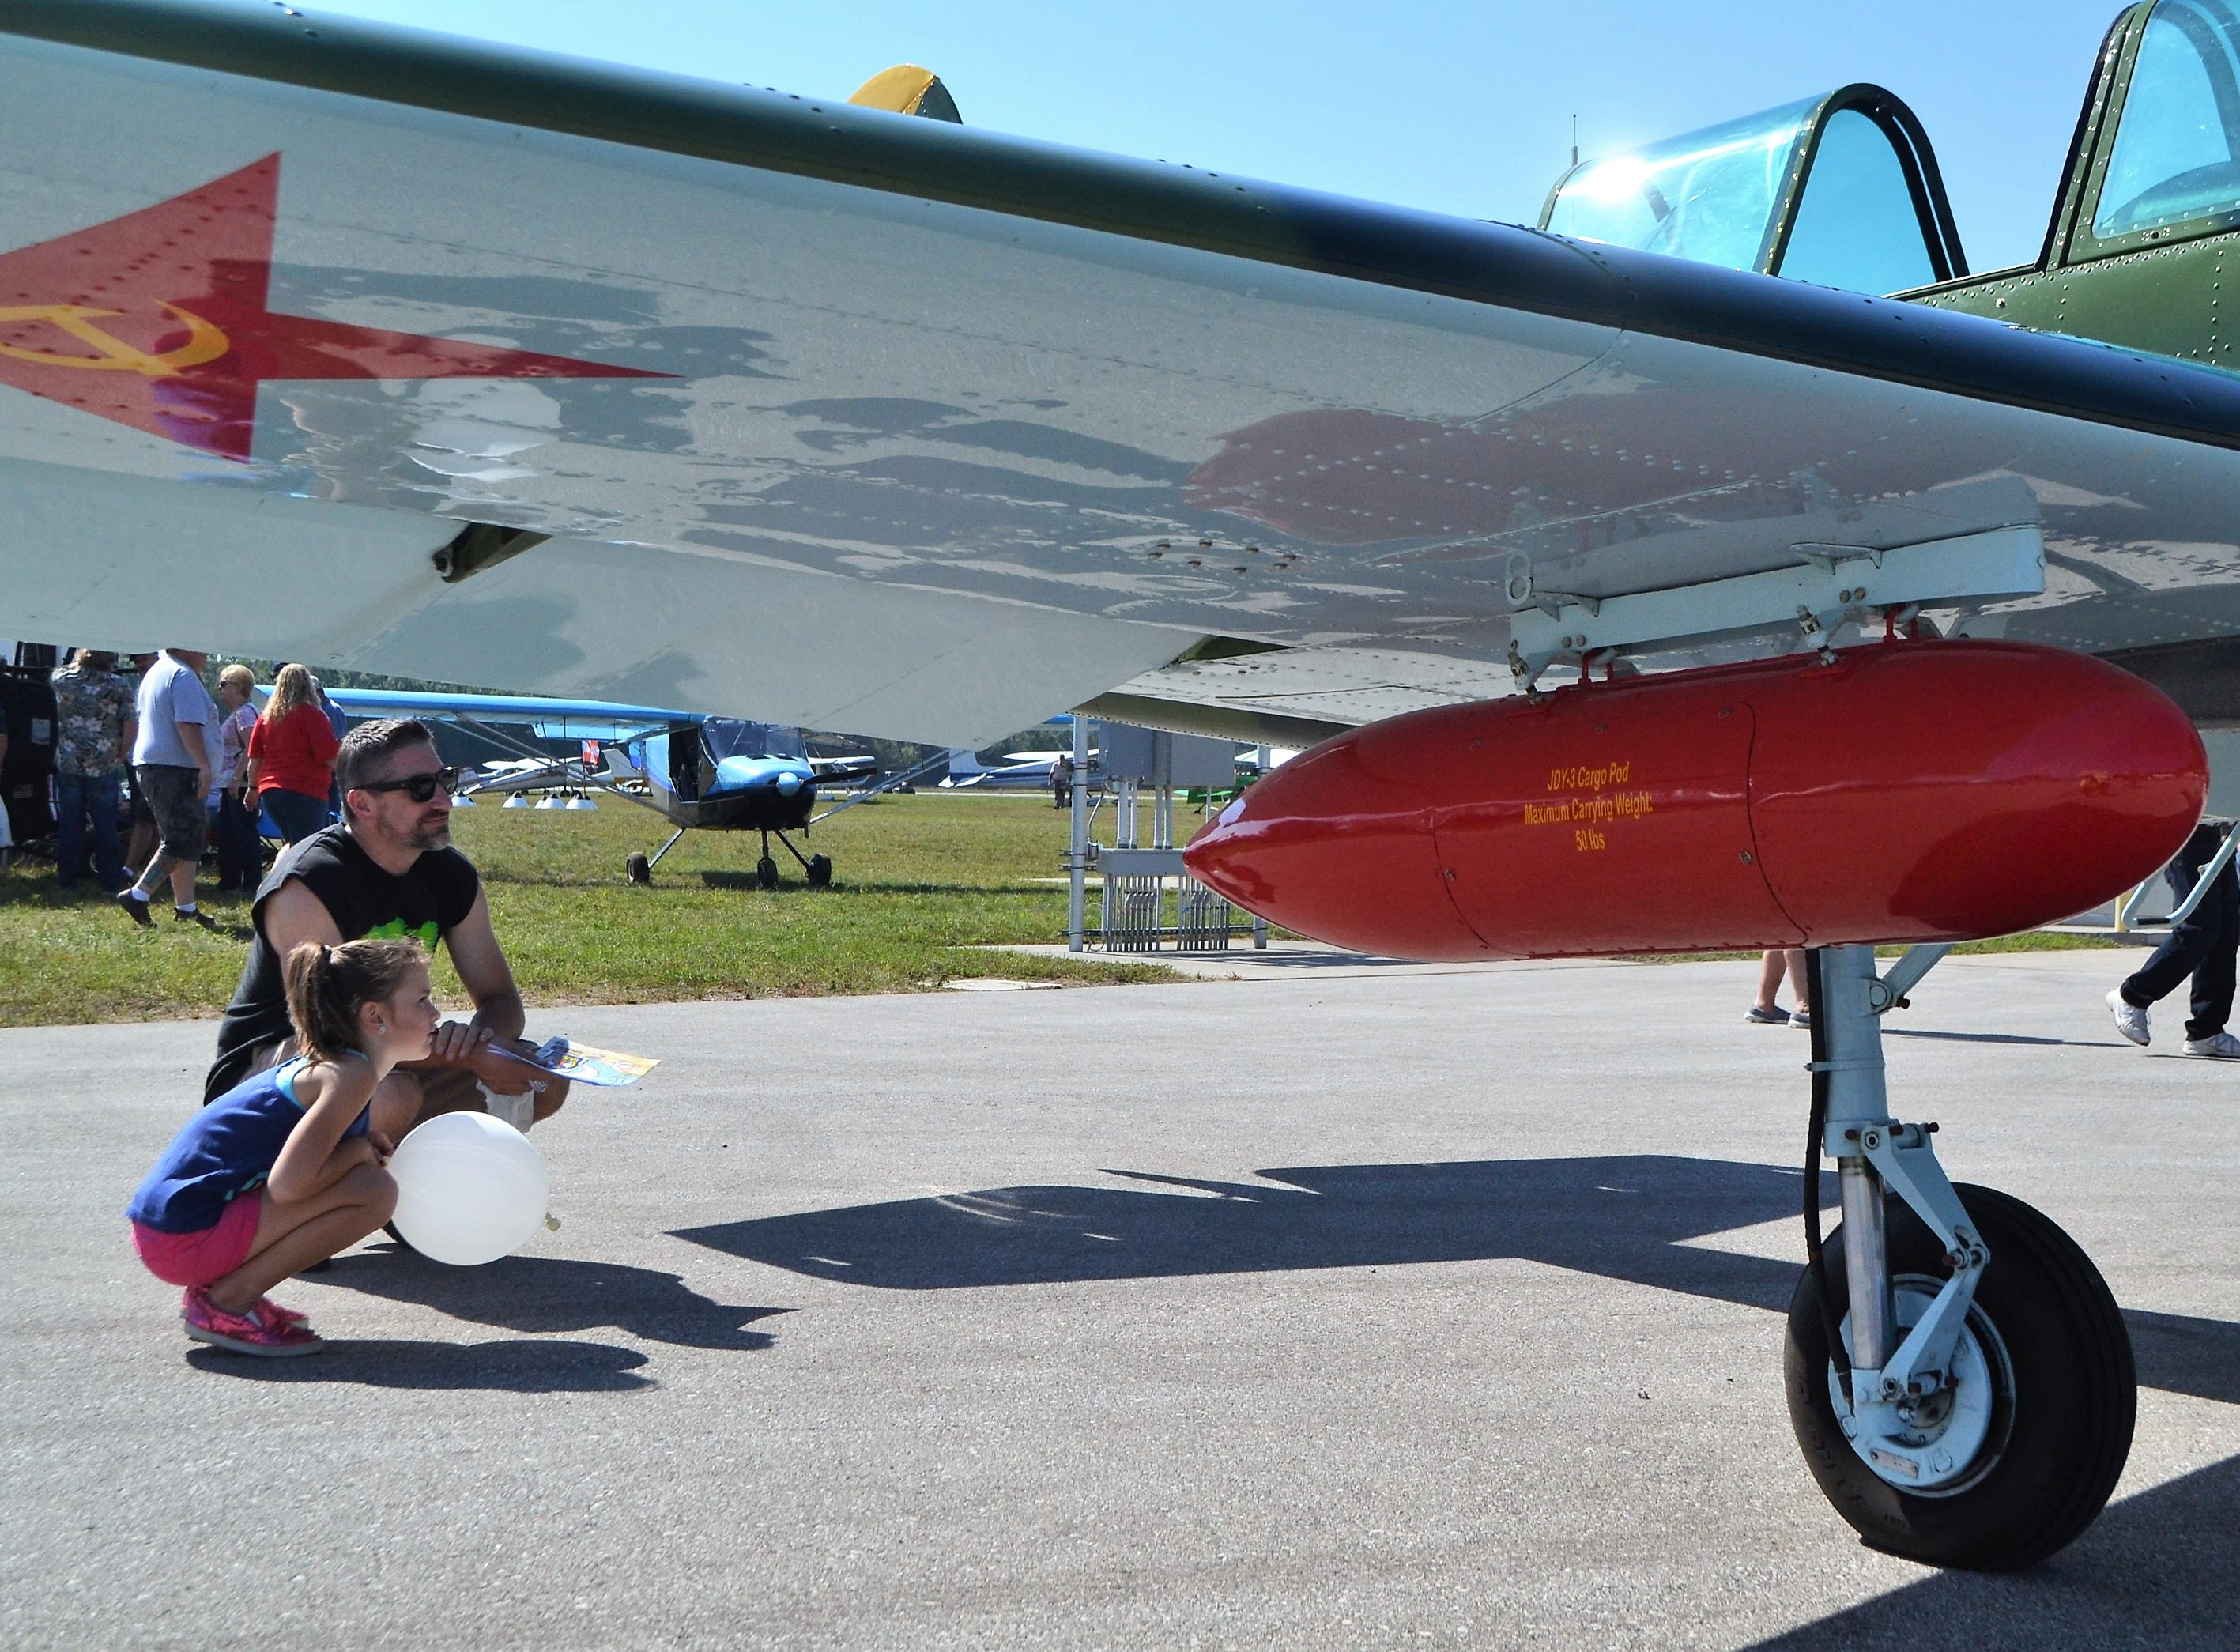 Rob Hansen of Oconto and his daughter, Ruby, 7, look over the YAK, flown in the '40s by the Soviet Union, at the Oconto Fly-in, Car & Tractor Show on Sept. 15 at the Oconto-J. Douglas Bake Municipal Airport.